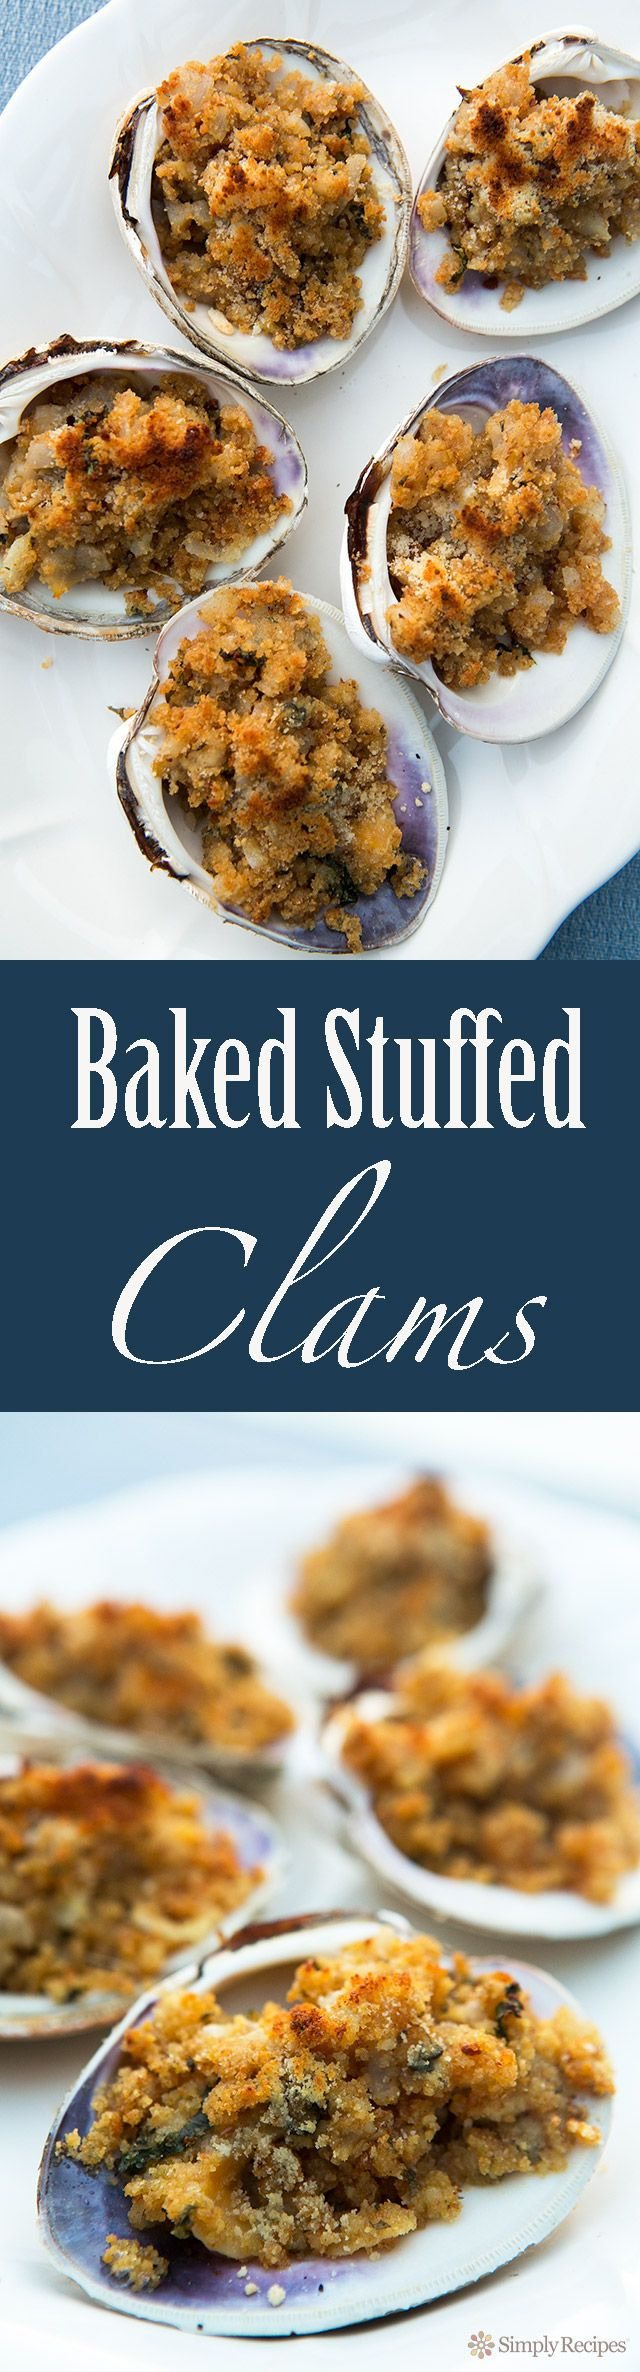 Baked Stuffed Clams ~ Minced clams mixed with butter, onions, parsley, and bread crumbs, spooned into half clam shells and baked. Quahog Stuffies recipe. Perfect for a summer holiday beach cookout! ~ SimplyRecipes.com